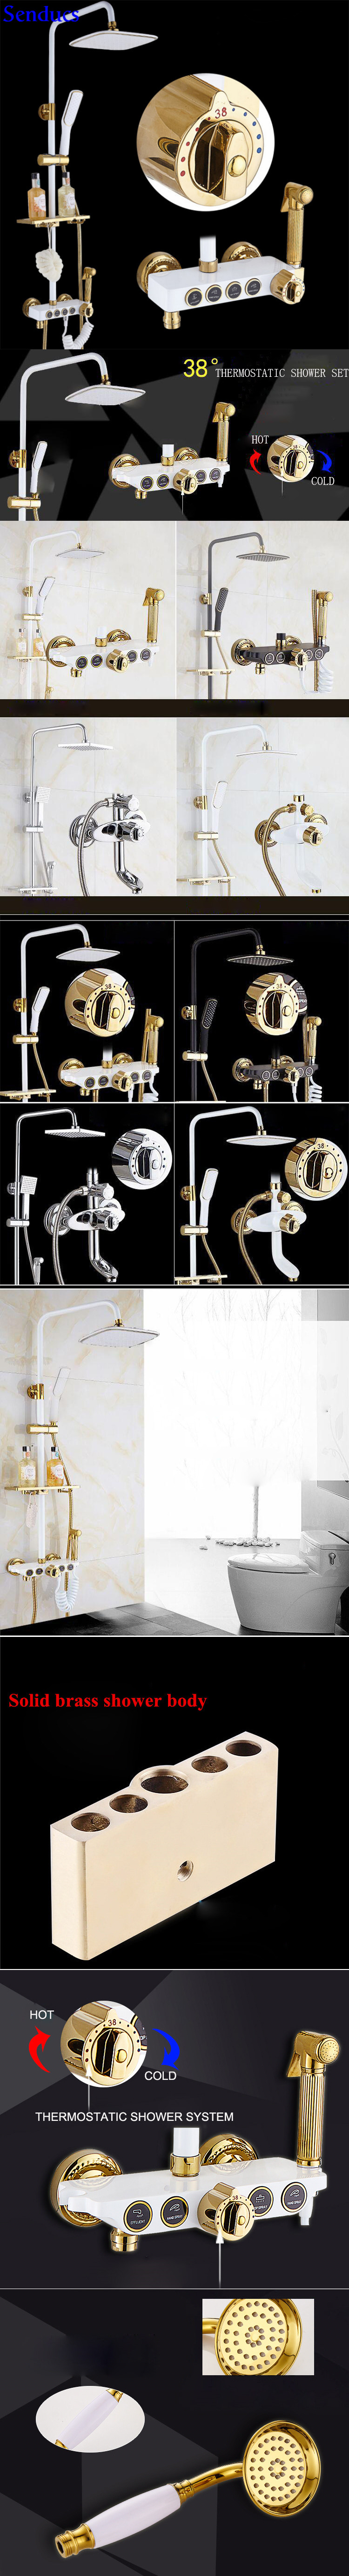 Senducs Chrome Thermostatic Shower Set Classic Bathroom Shower System With Cheap Price Brass Bathroom Top Shower Set Shower System Aliexpress